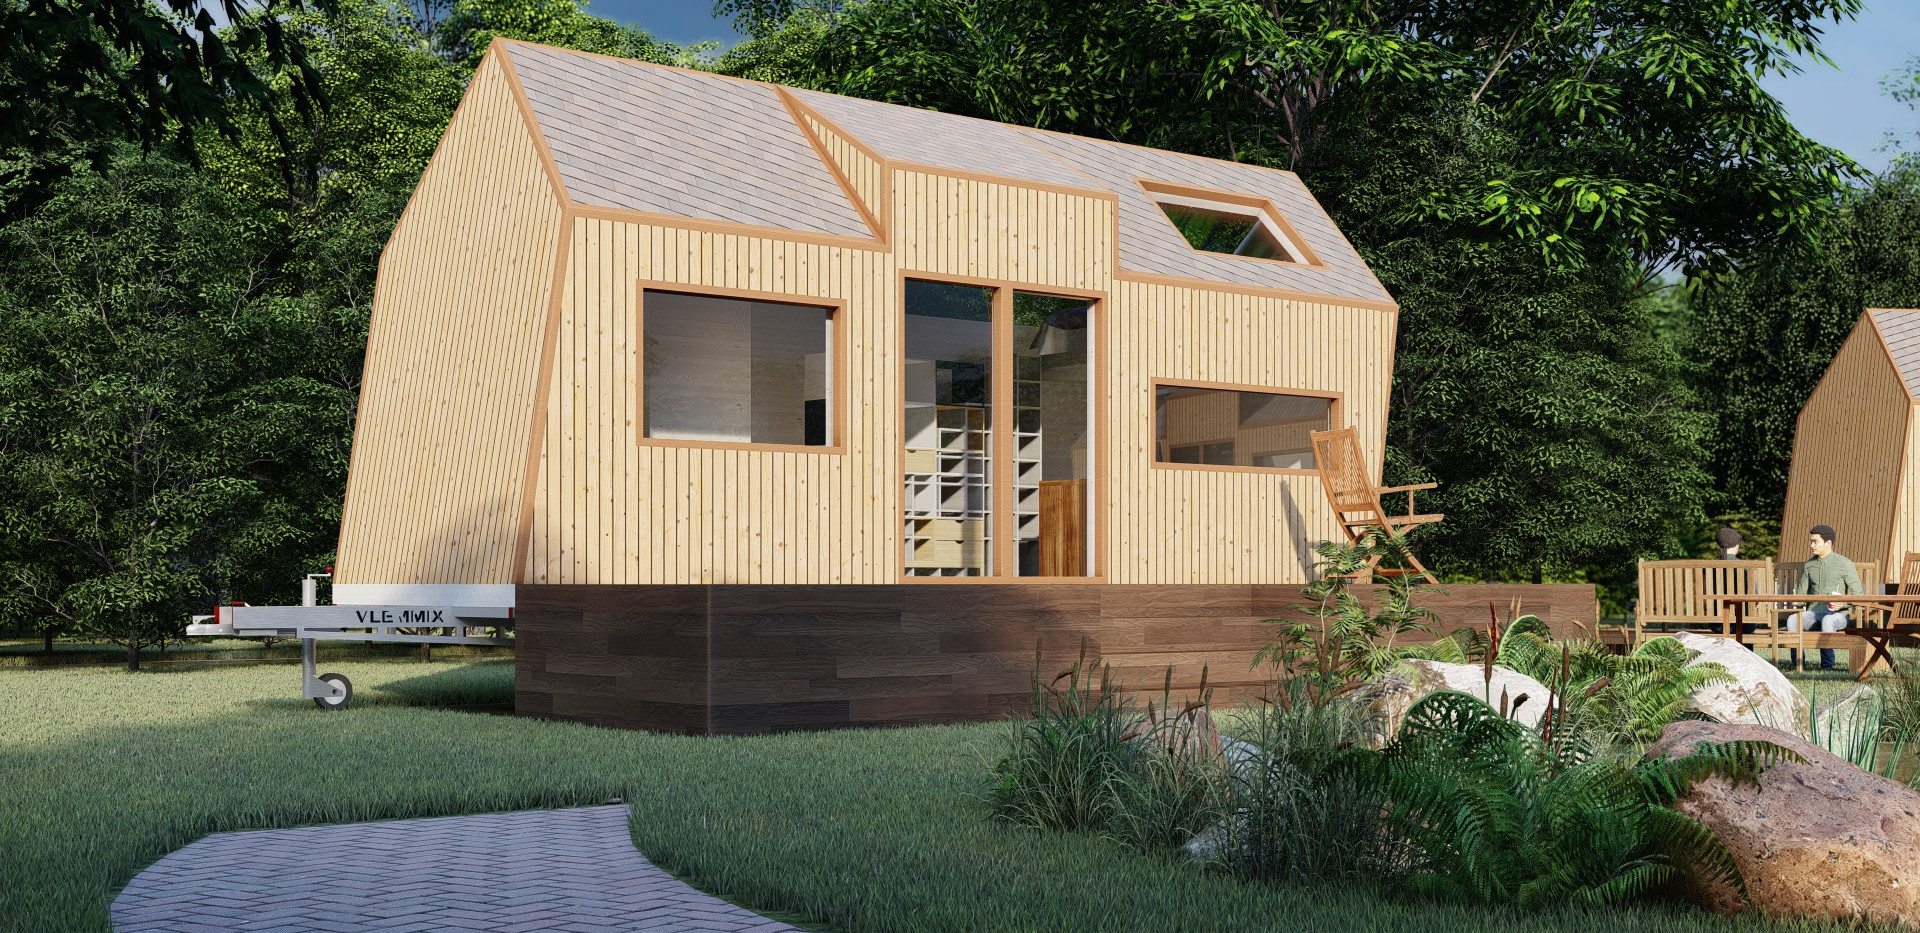 Tiny House Project Image 6.jpg